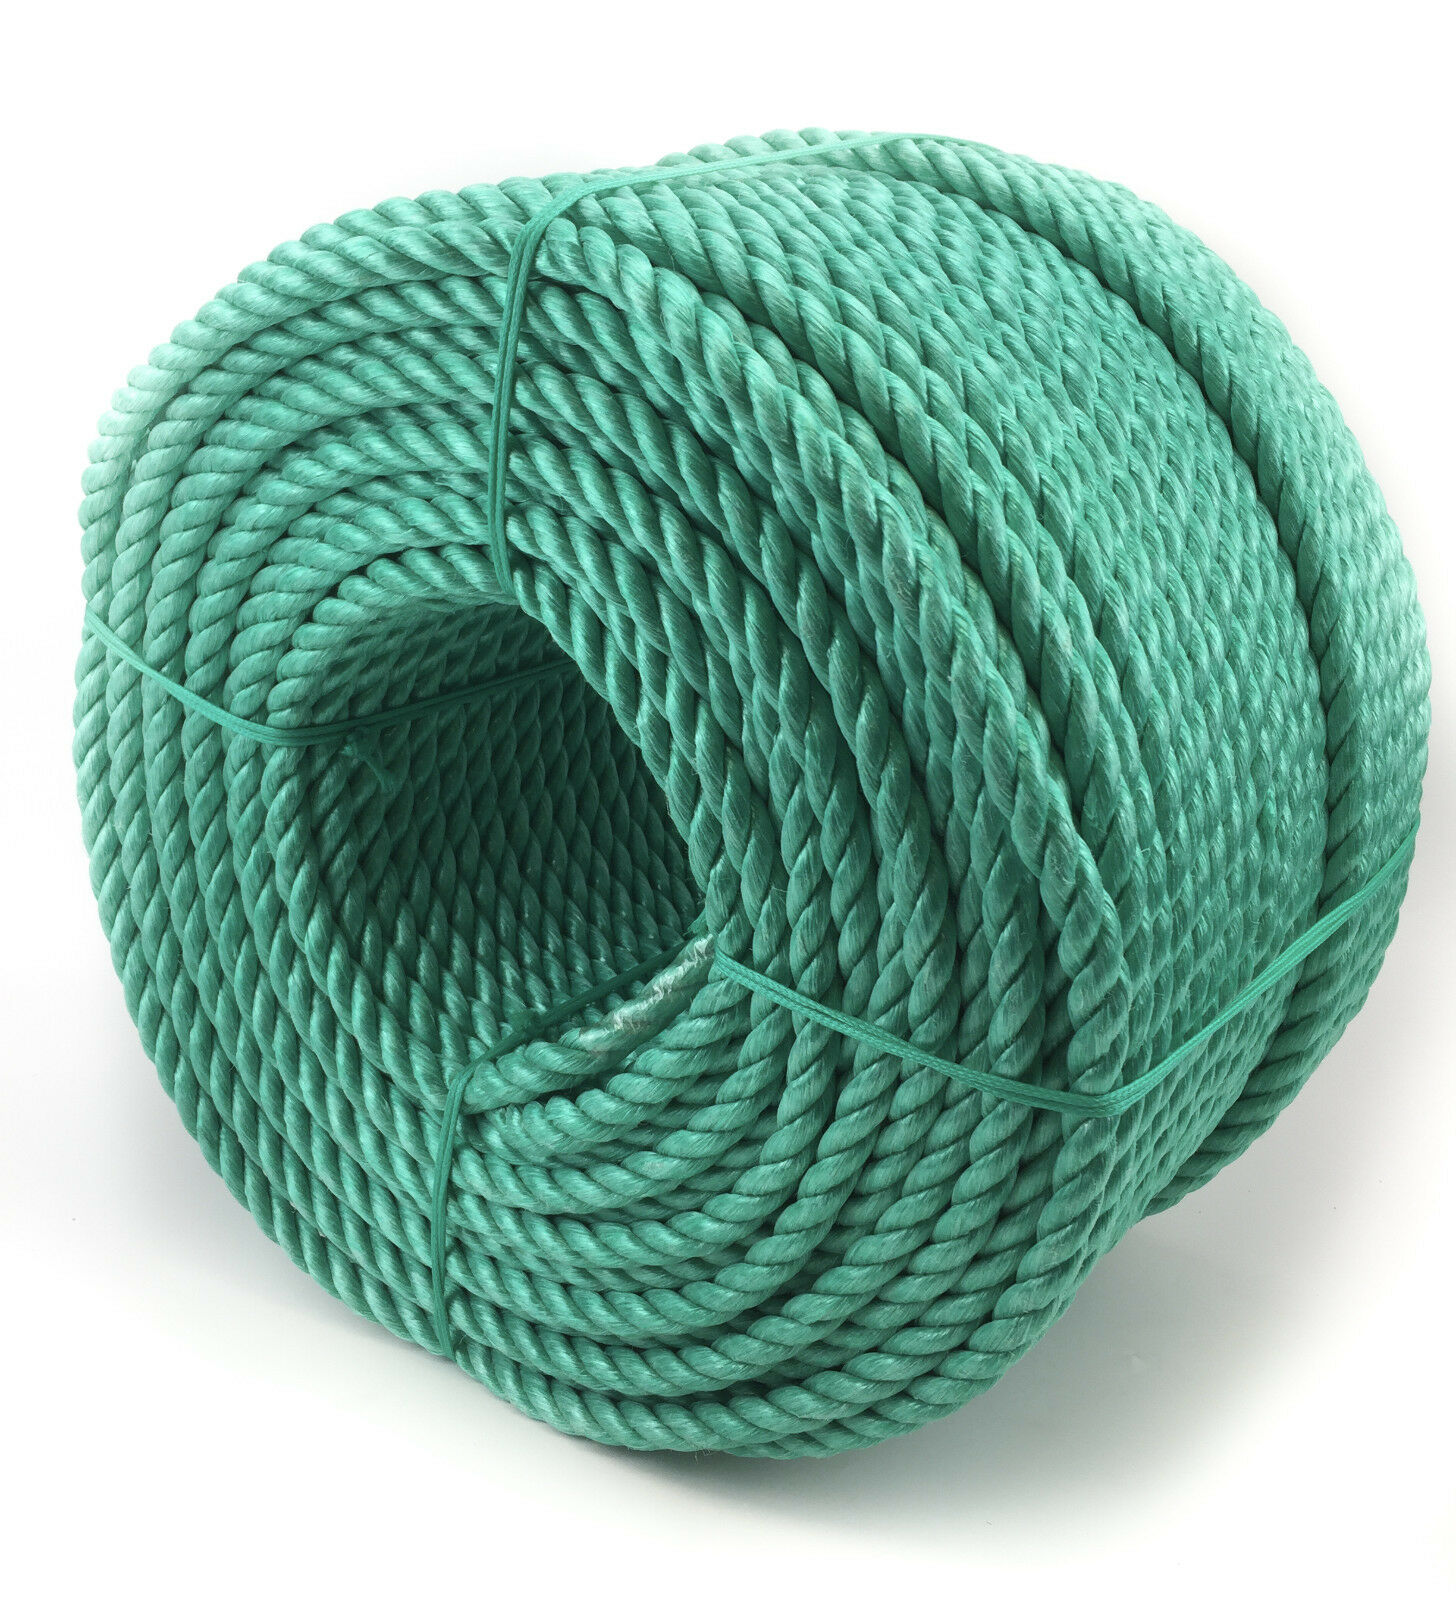 20mm Green Polypropylene Rope x 35 Metres, Poly Rope Coils, Cheap Nylon Rope